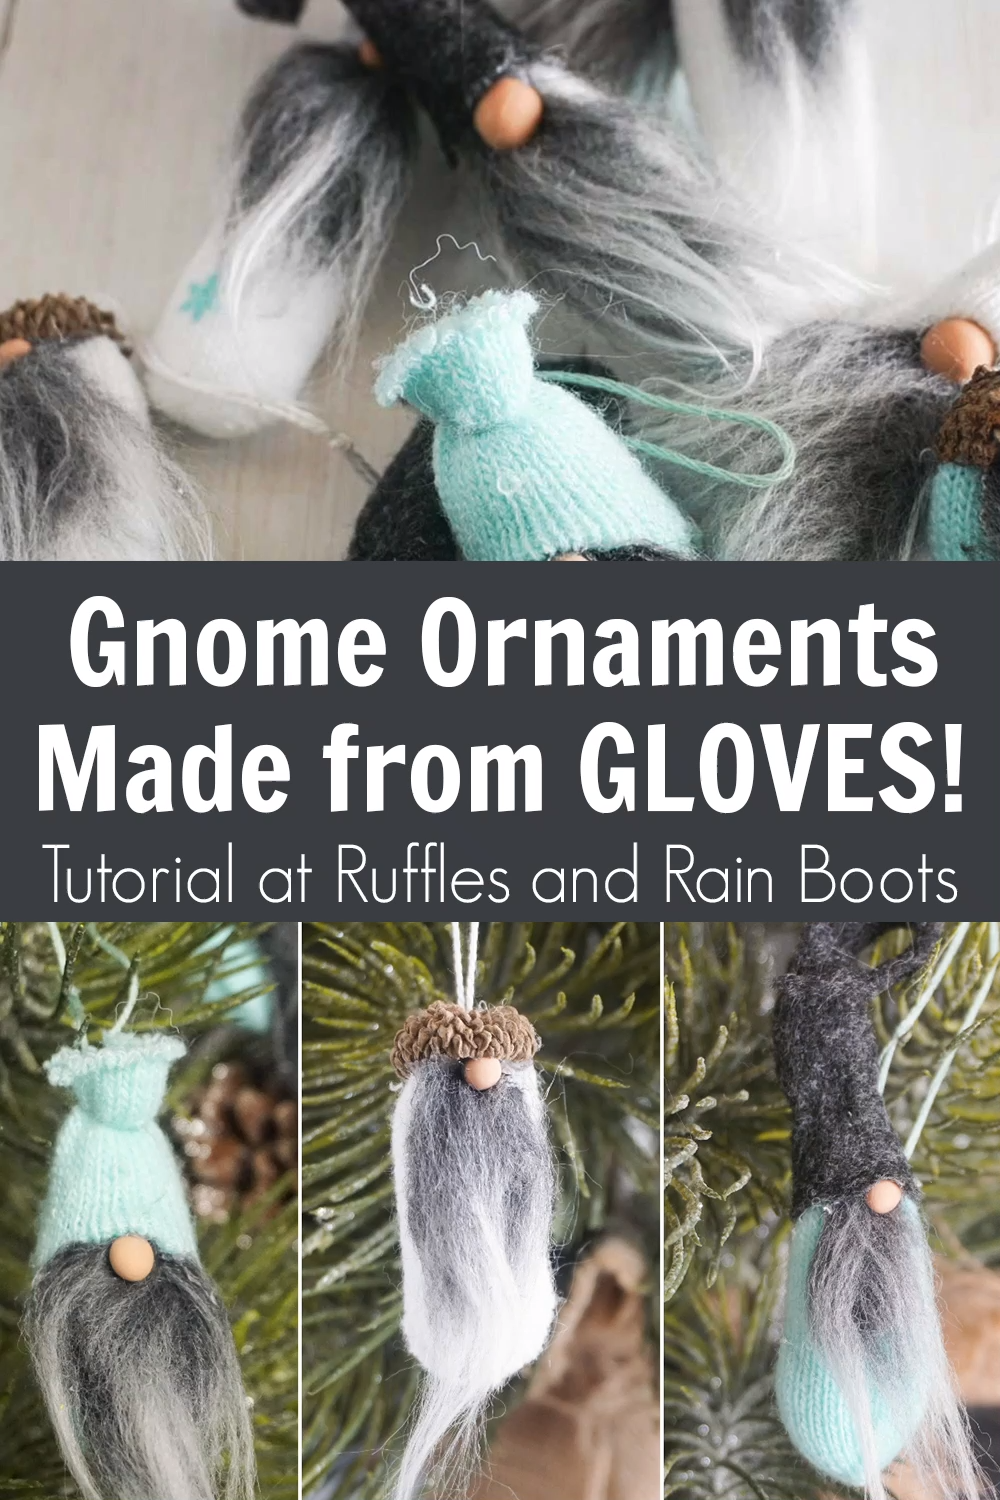 These adorable gnome ornaments are made from t he fingers of gloves! I know, right?! How amazing is this Christmas ornament craft - it is definitely fun and unique. Click through to make the cutest gnome ornaments for the holidays. #gnome #diygnome #christmasgnome #rufflesandrainboots